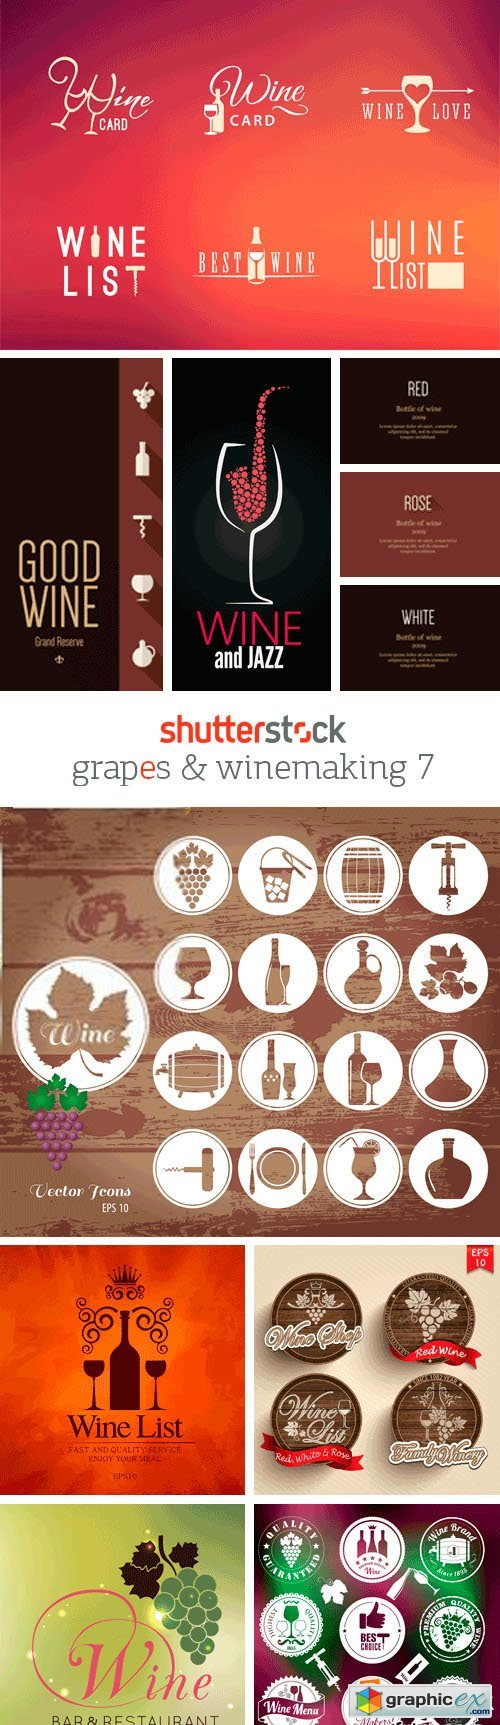 Amazing SS - Grapes & Winemaking 7, 25xEPS